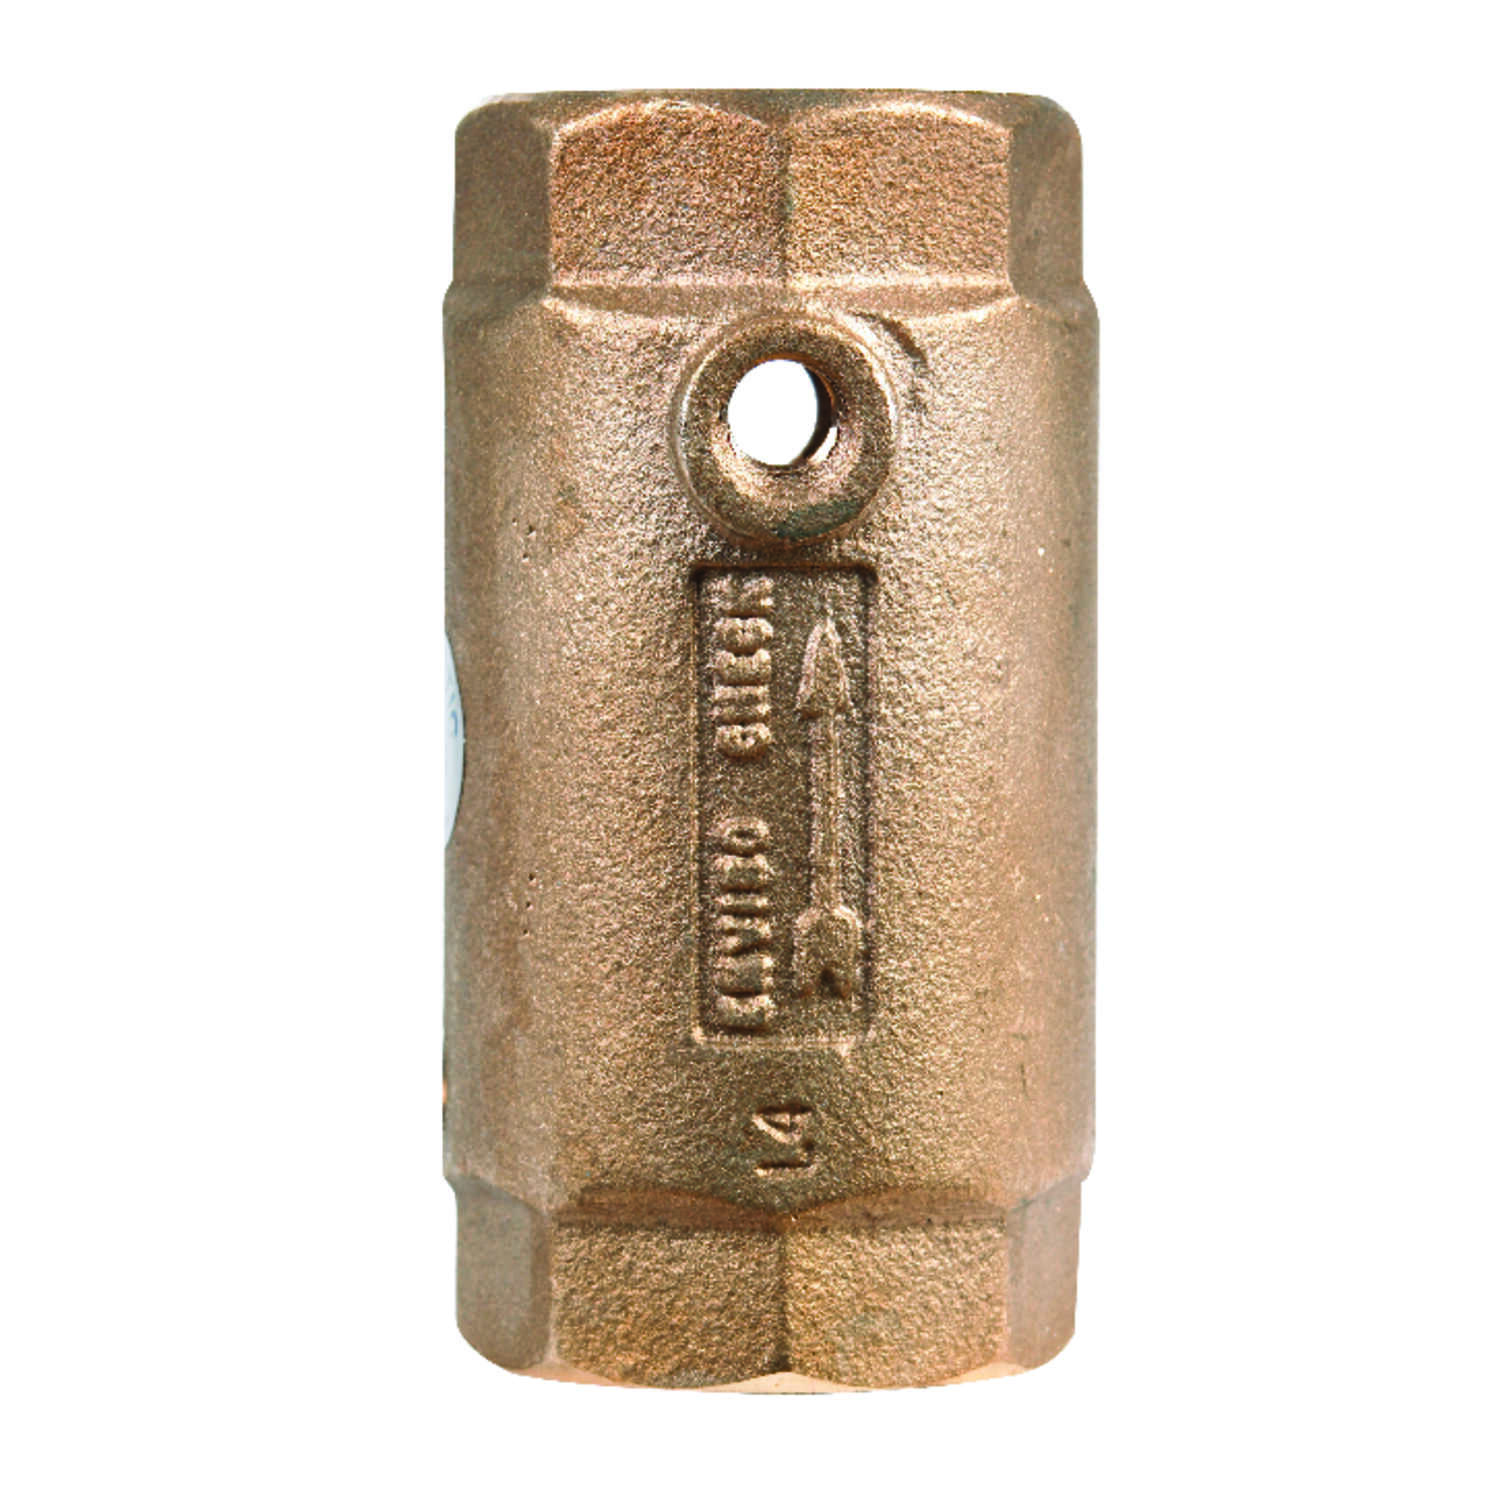 Campbell  1 1/4 in. 1-1/4 in. FNPT  Red Brass  Spring  Check Valve